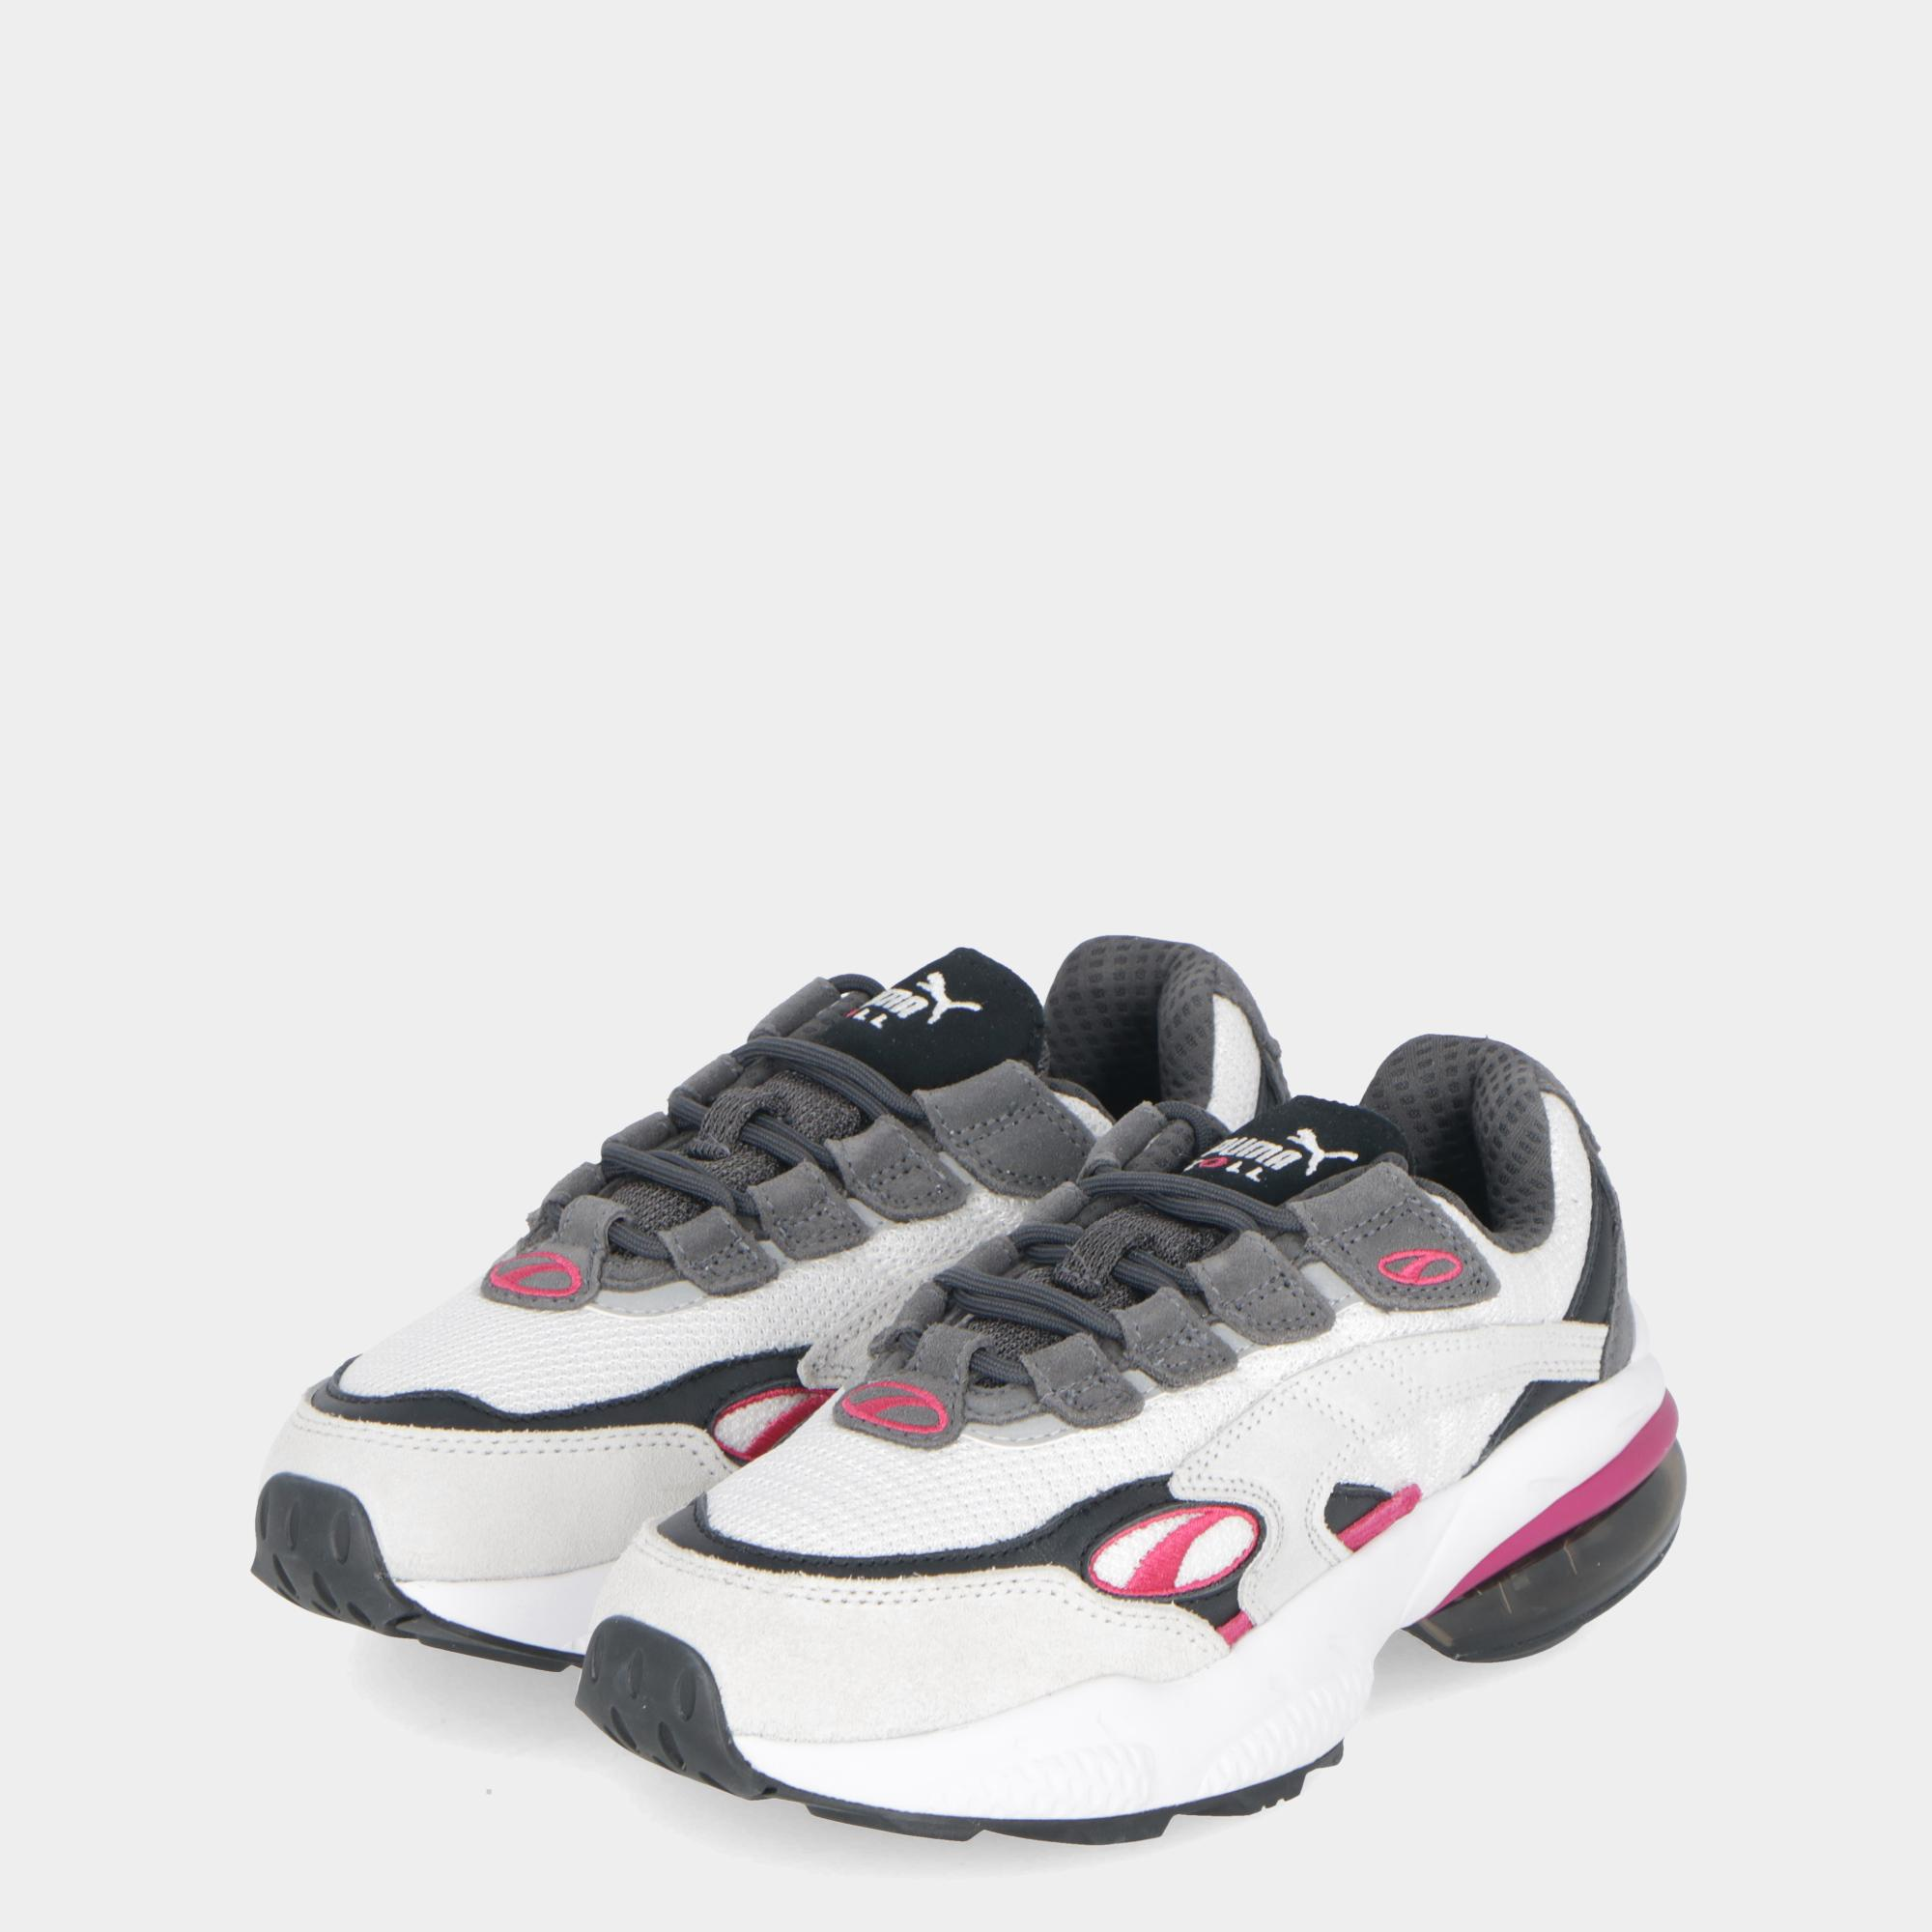 Puma Cell Venom Puma white fuchsia purple